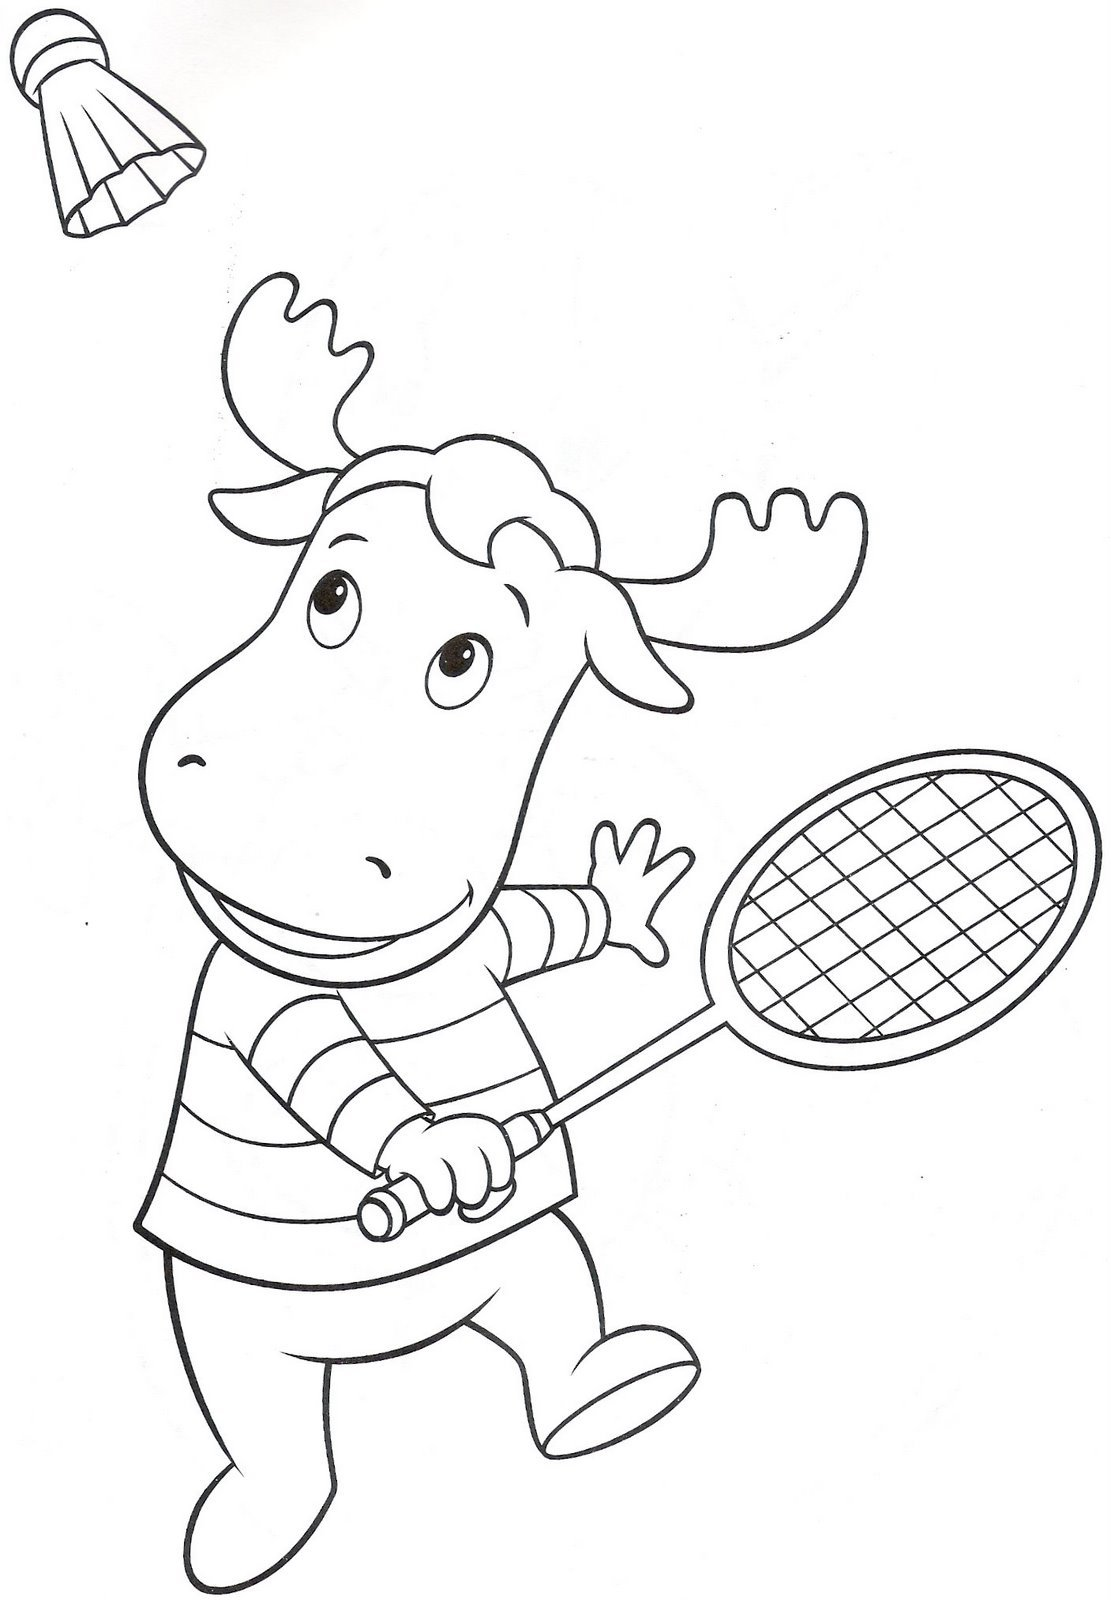 Pablo Backyardigans Coloring Pages Sketch Coloring Page